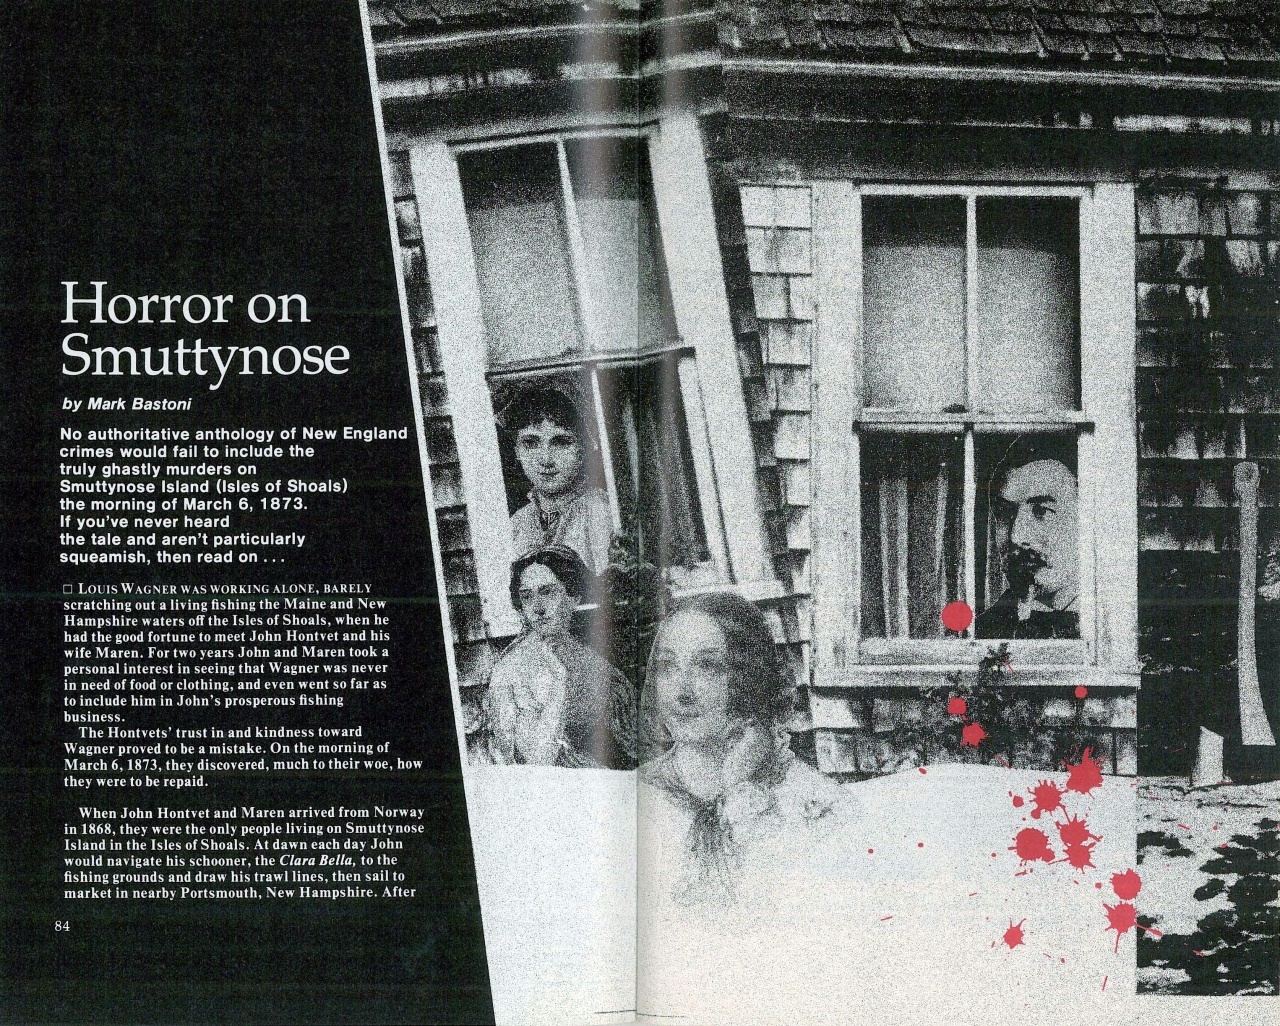 Horror on Smuttynose | The 1973 Smuttynose Murders